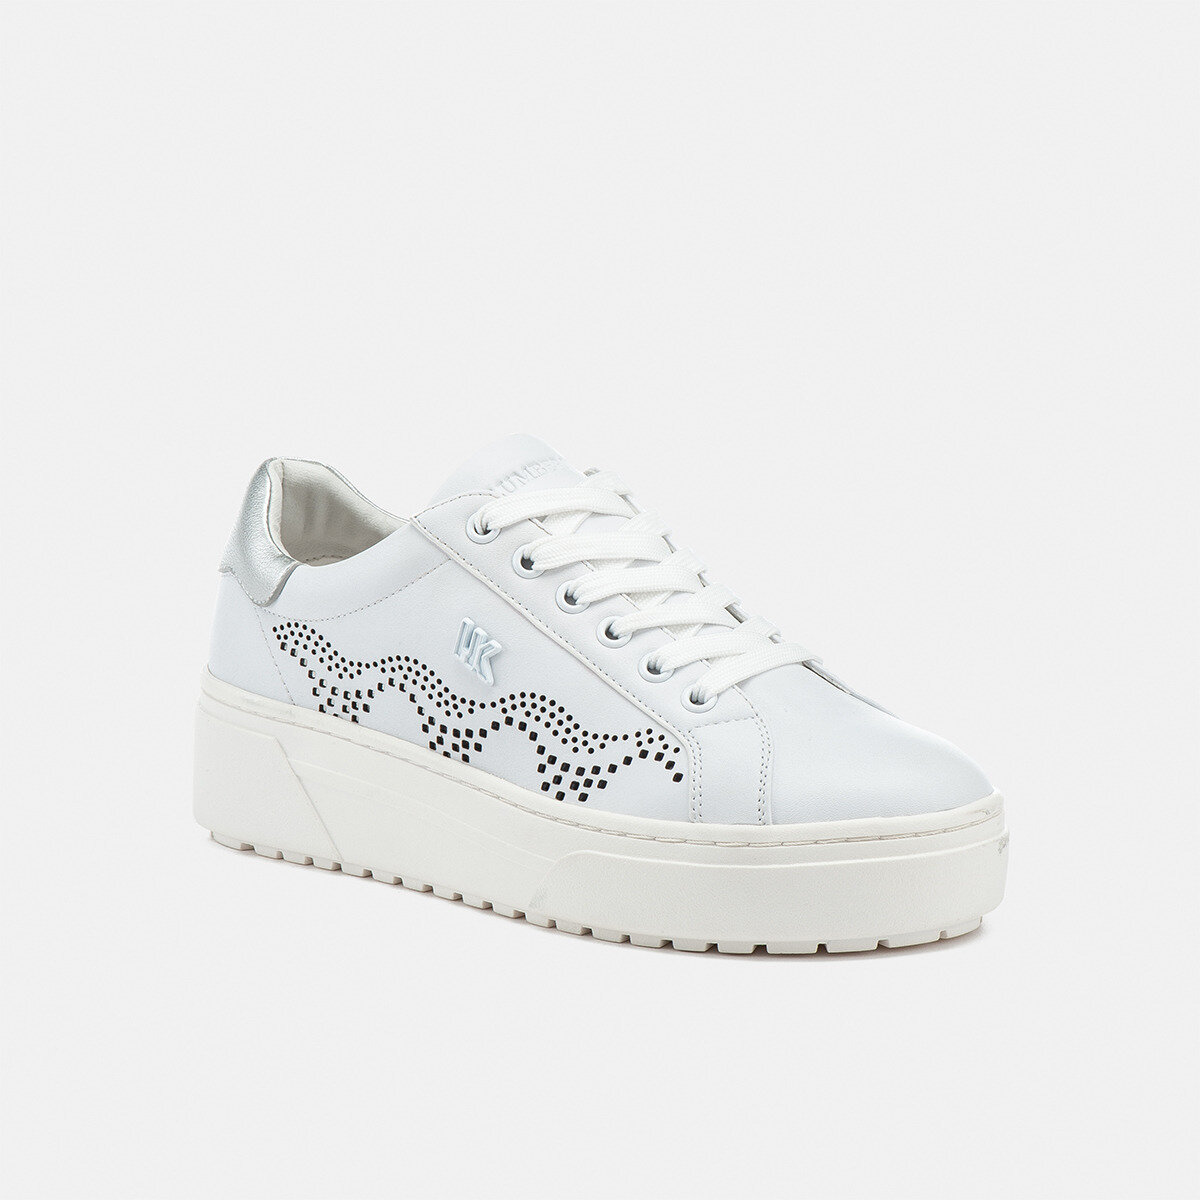 KALLY WHITE Woman Sneakers